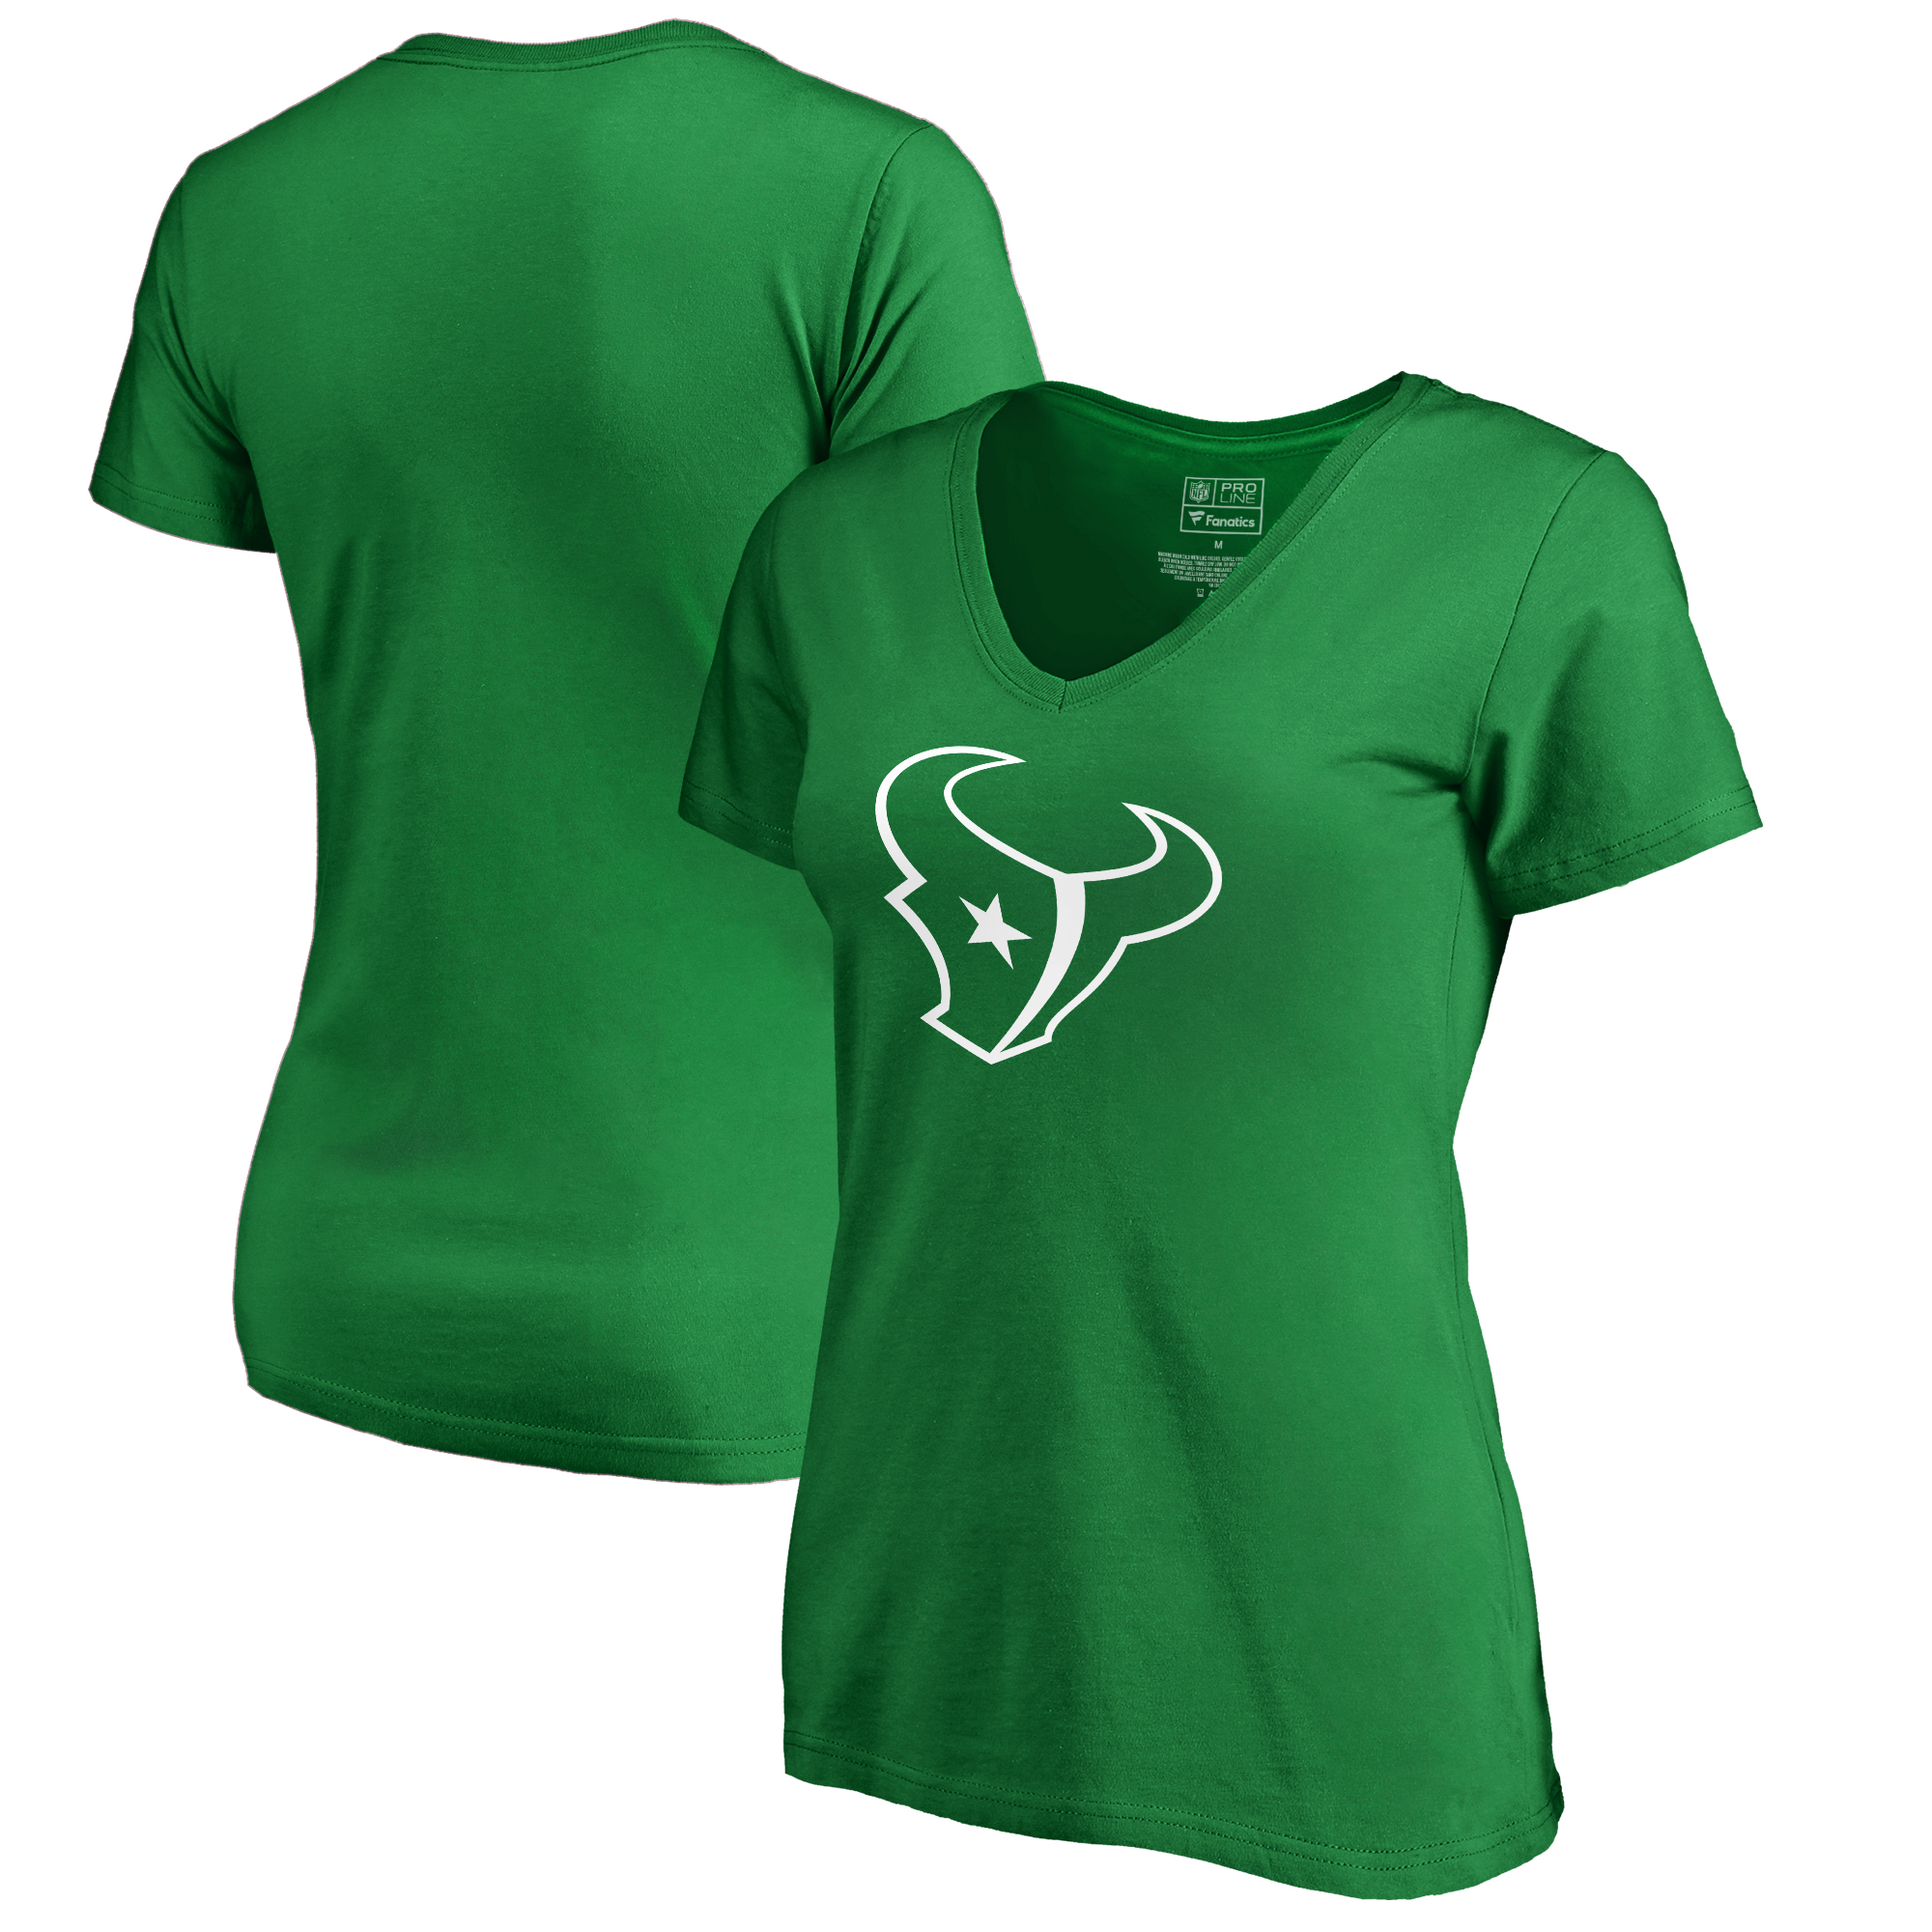 Houston Texans NFL Pro Line by Fanatics Branded Women's St. Patrick's Day White Logo T-Shirt - Kelly Green